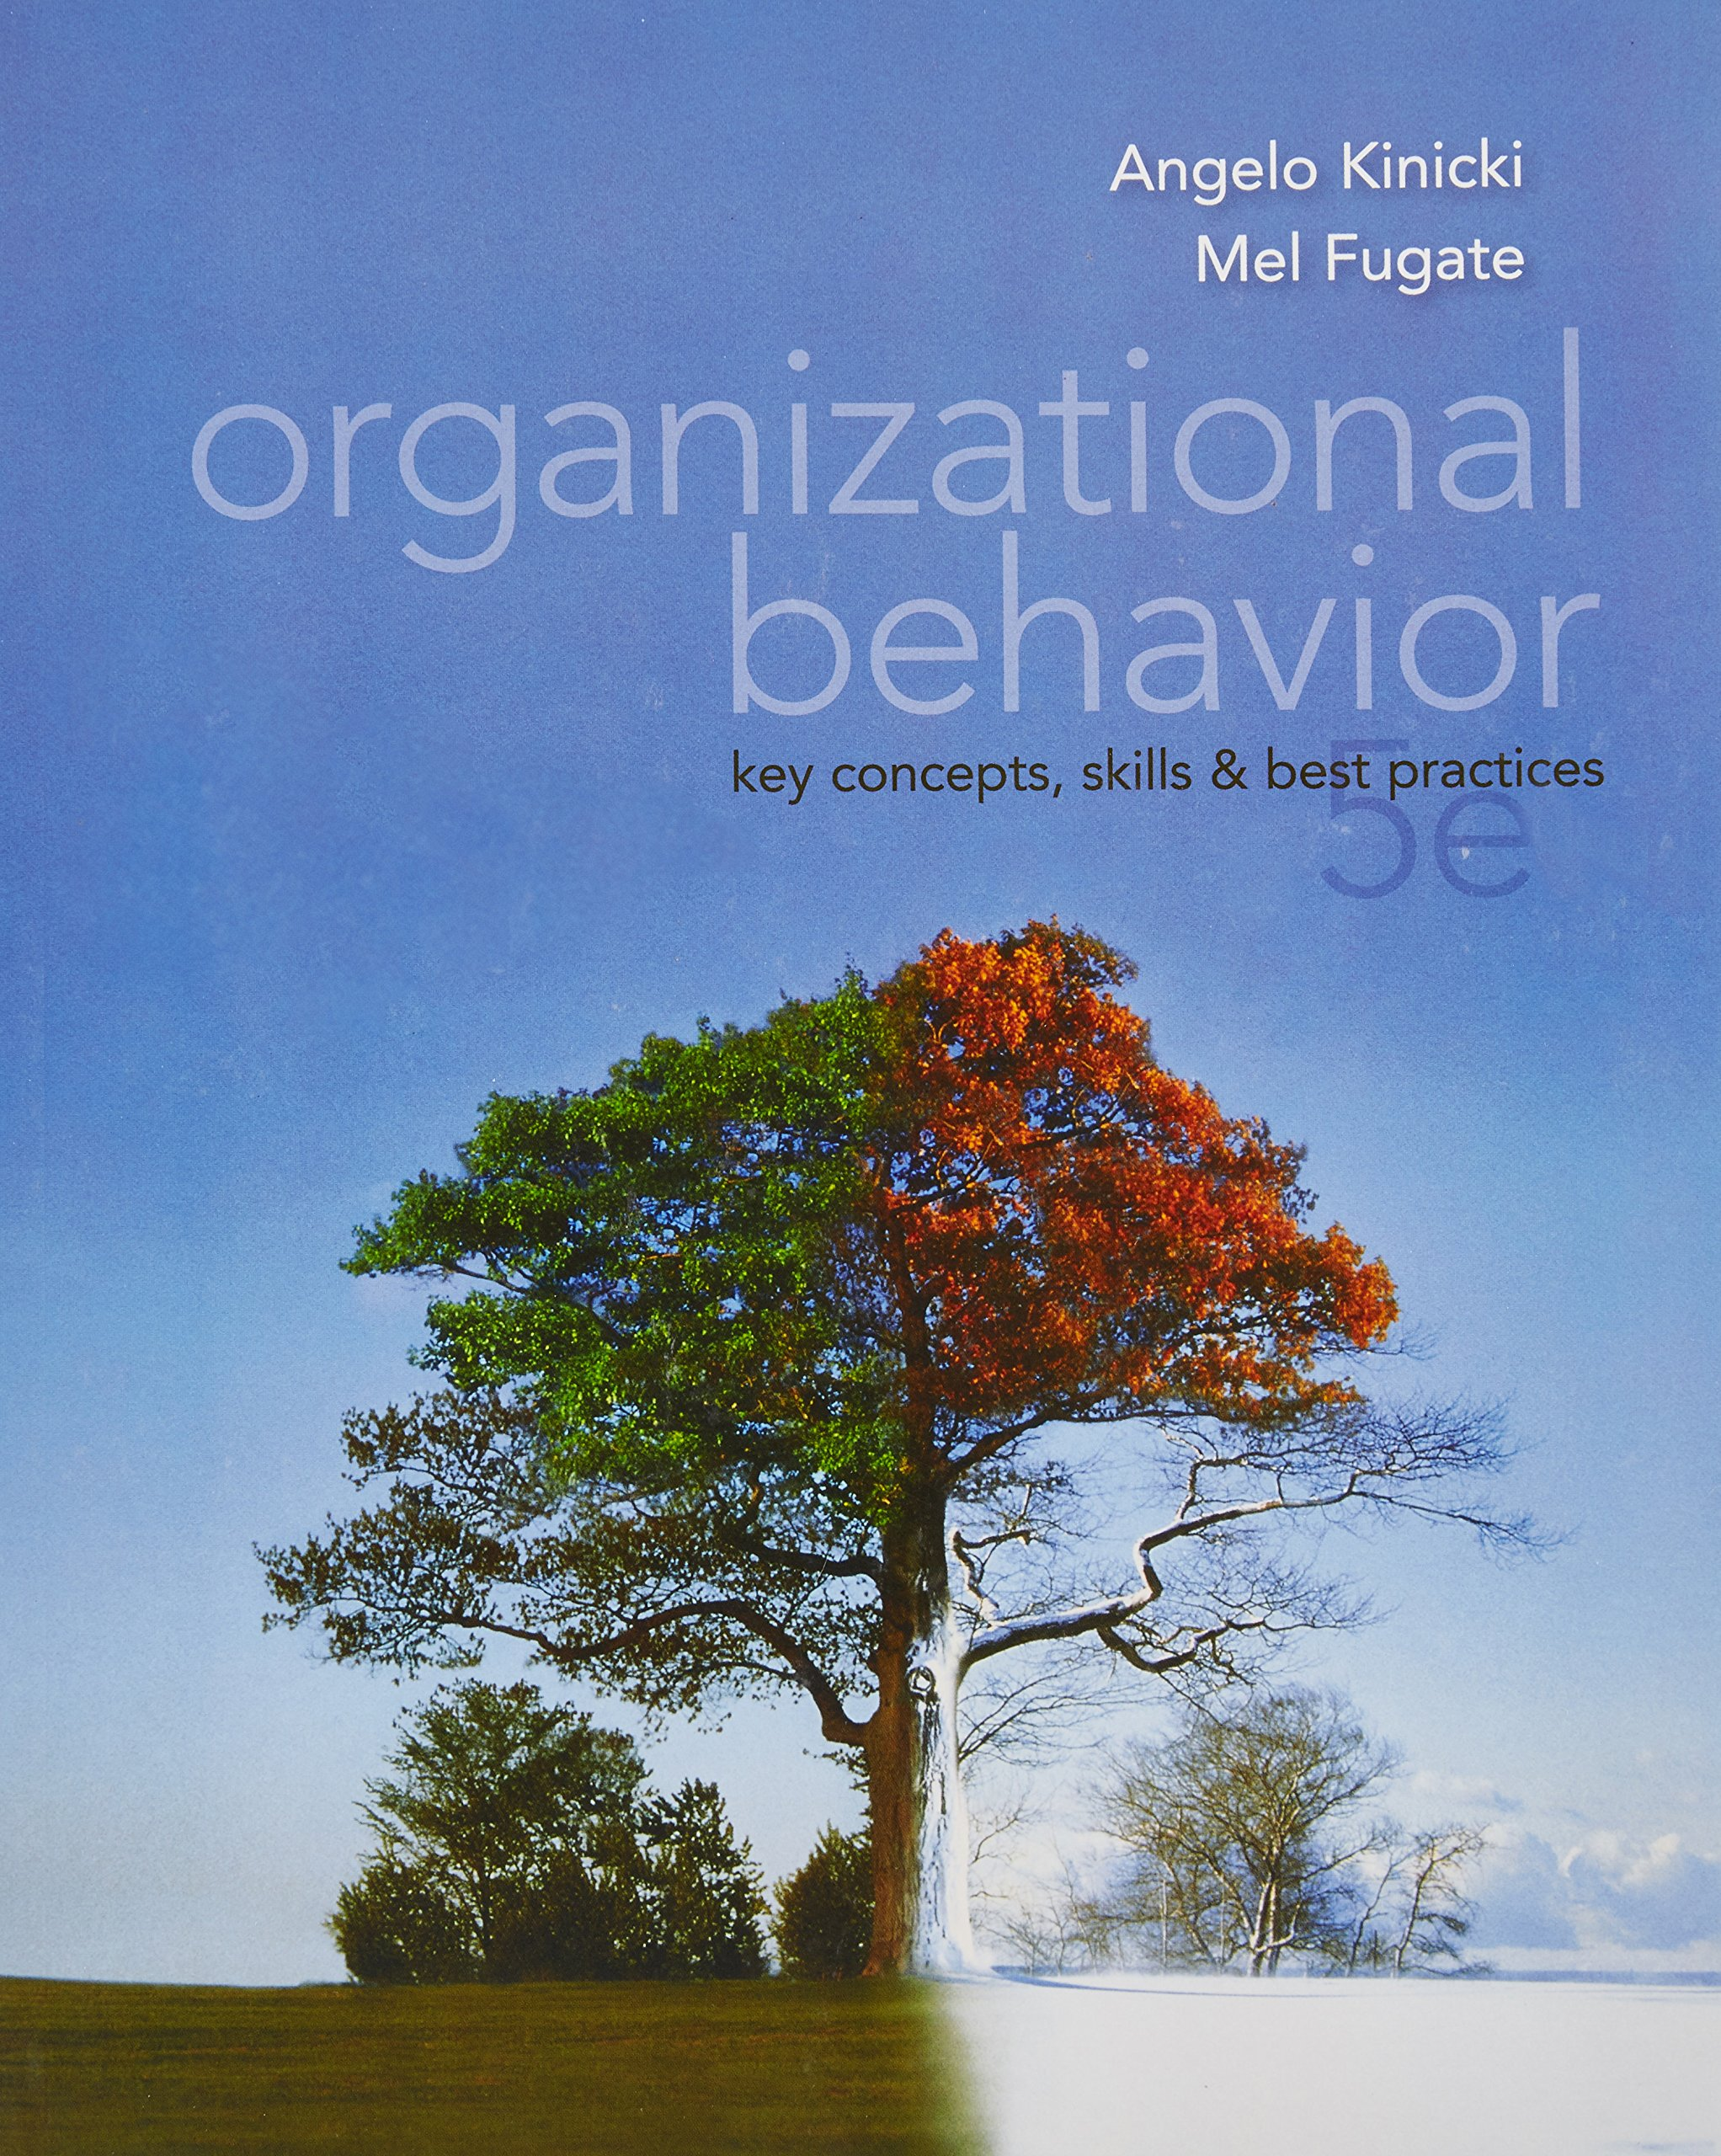 organizational behavior key concepts skills and best practices organizational behavior key concepts skills and best practices angelo kinicki 9780071315685 books ca